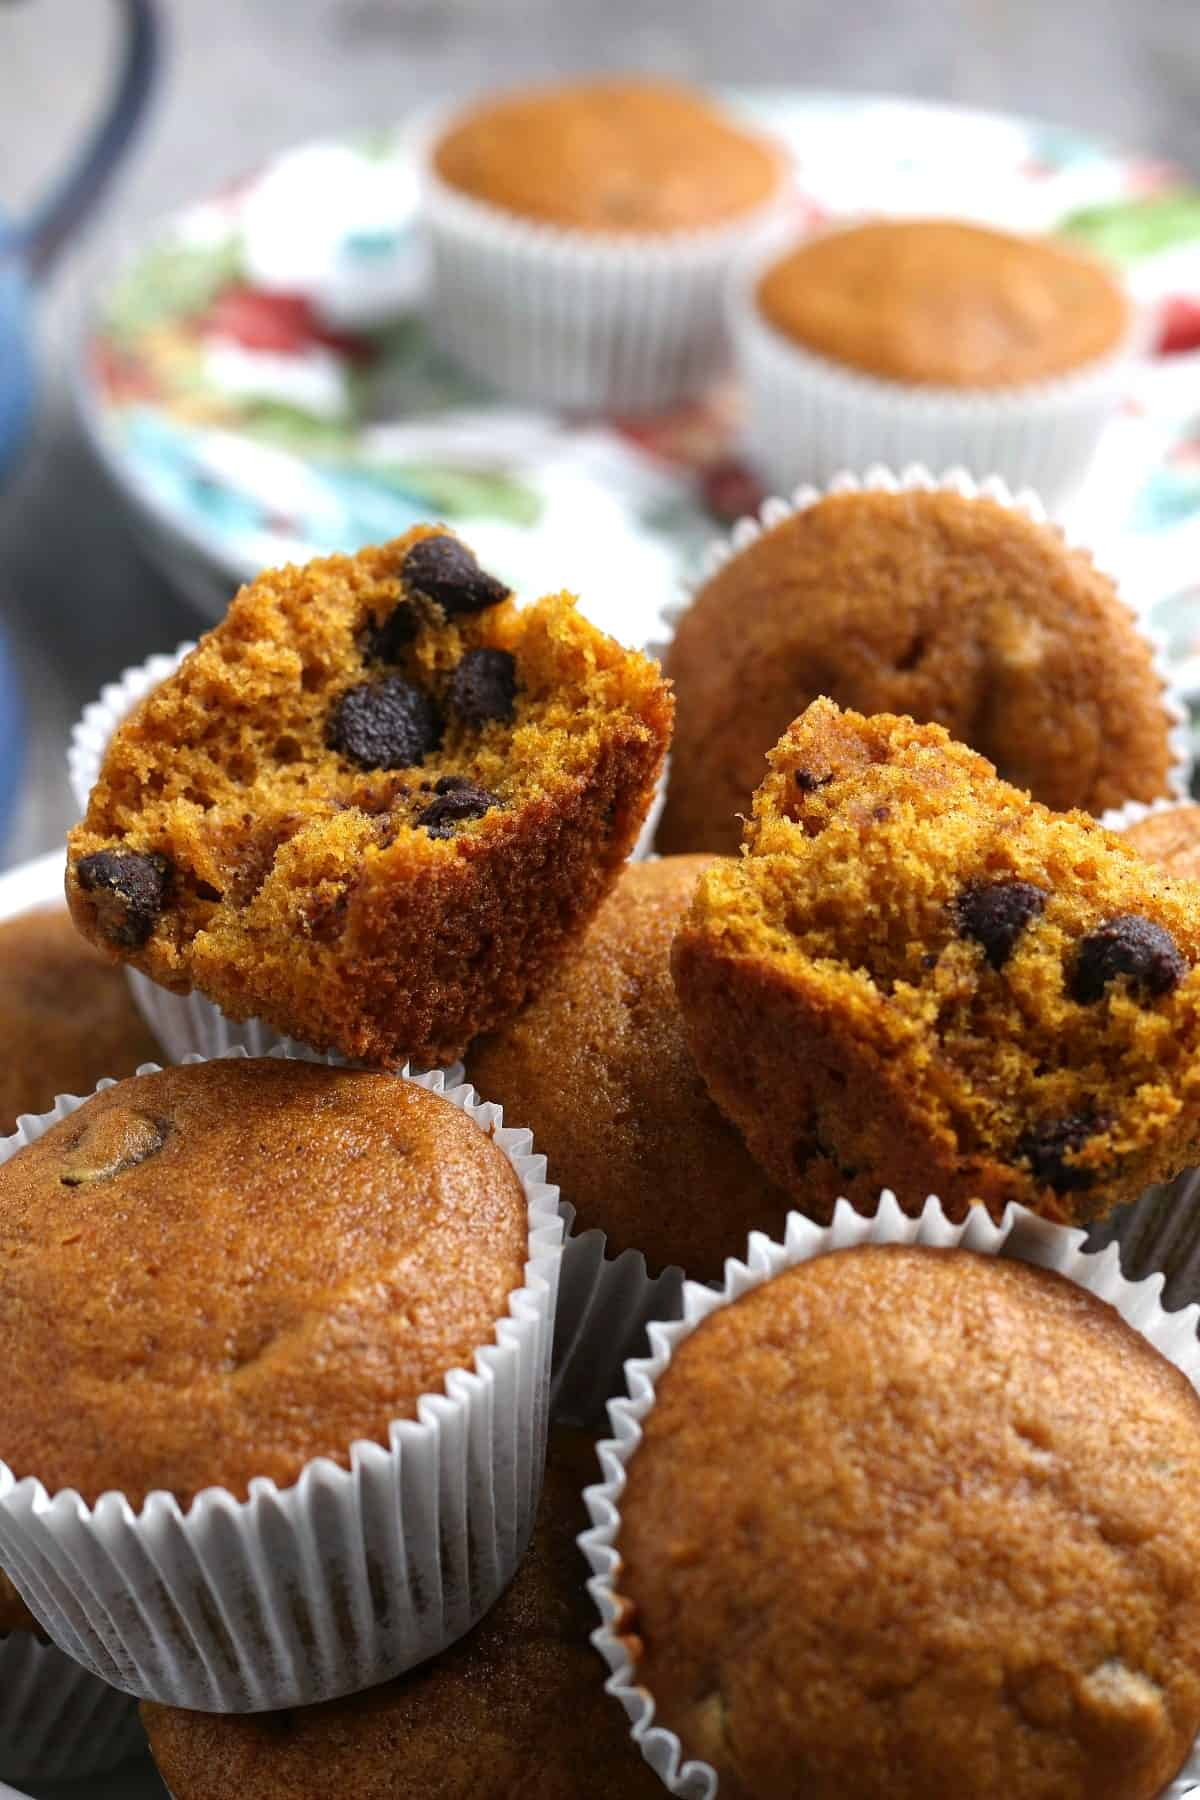 Close up of muffins in paper cups with one open on top of the pile.